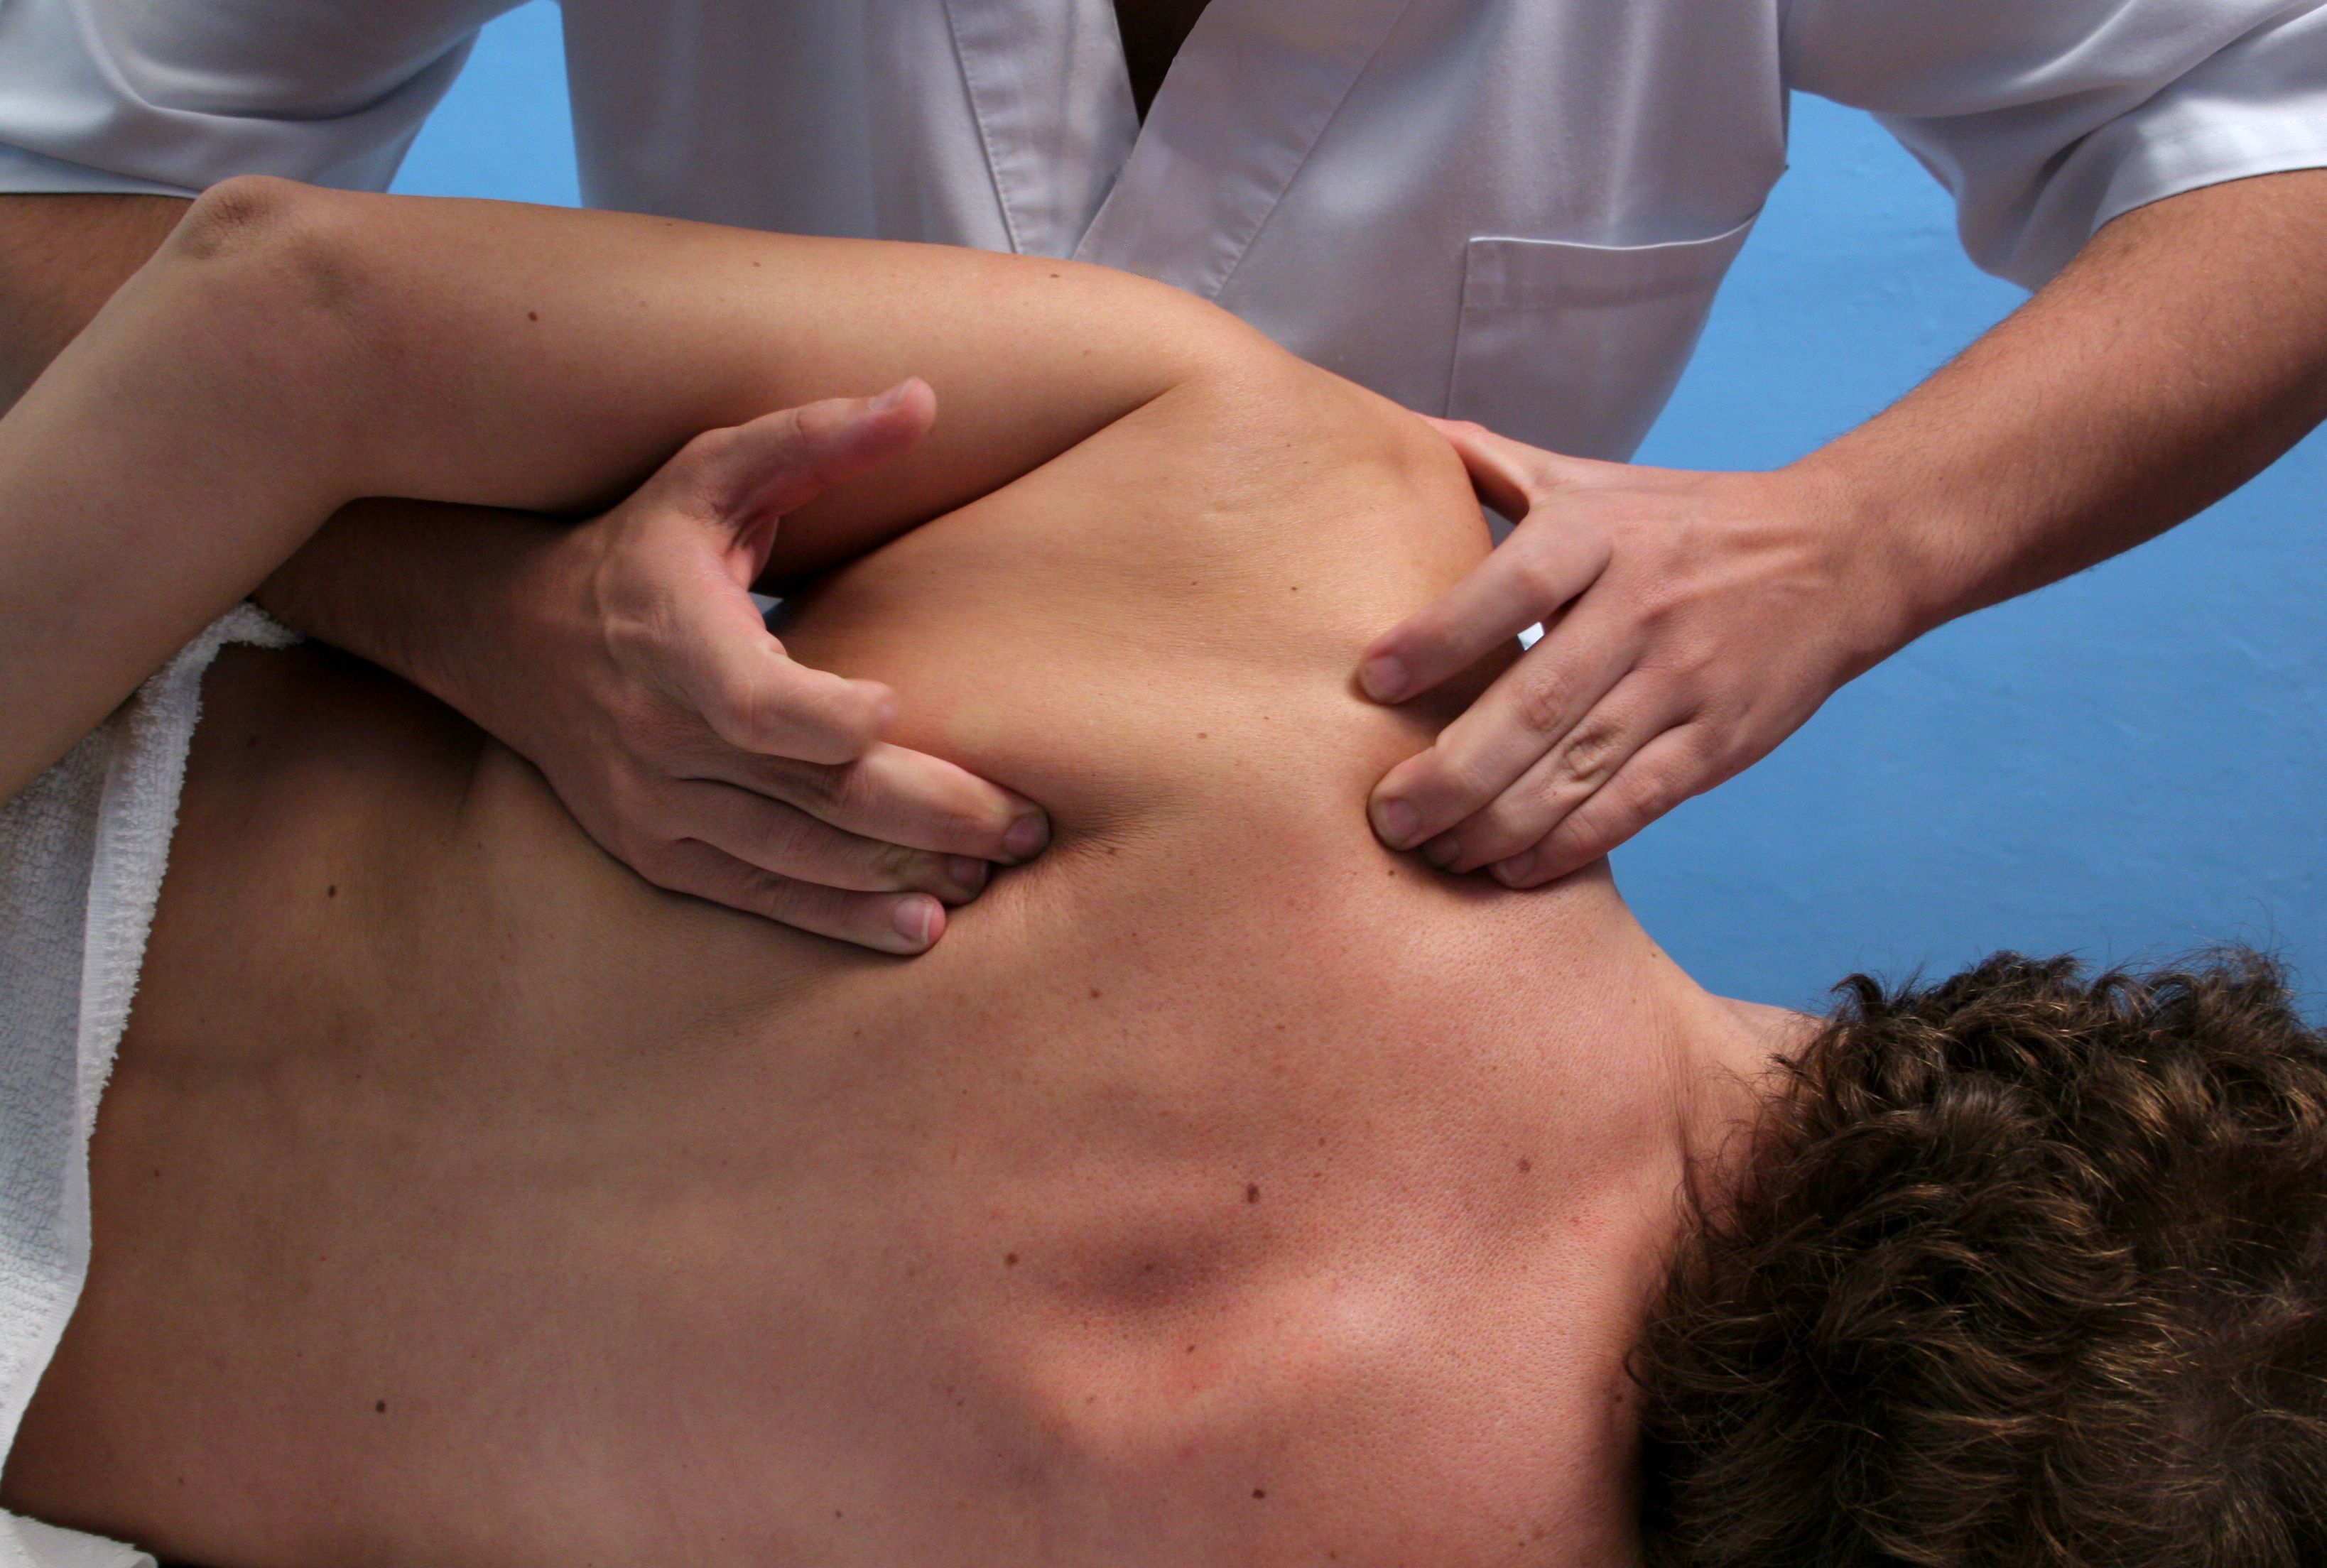 history and assessment of massage therapy Massage therapy is the manipulation of the soft tissue on the body by a practitioner through the movement of their hands and arms as well as advanced techniques as mentioned in the ebook history of massage, therapies & rules in china 'for years, blind people where the main masseurs.